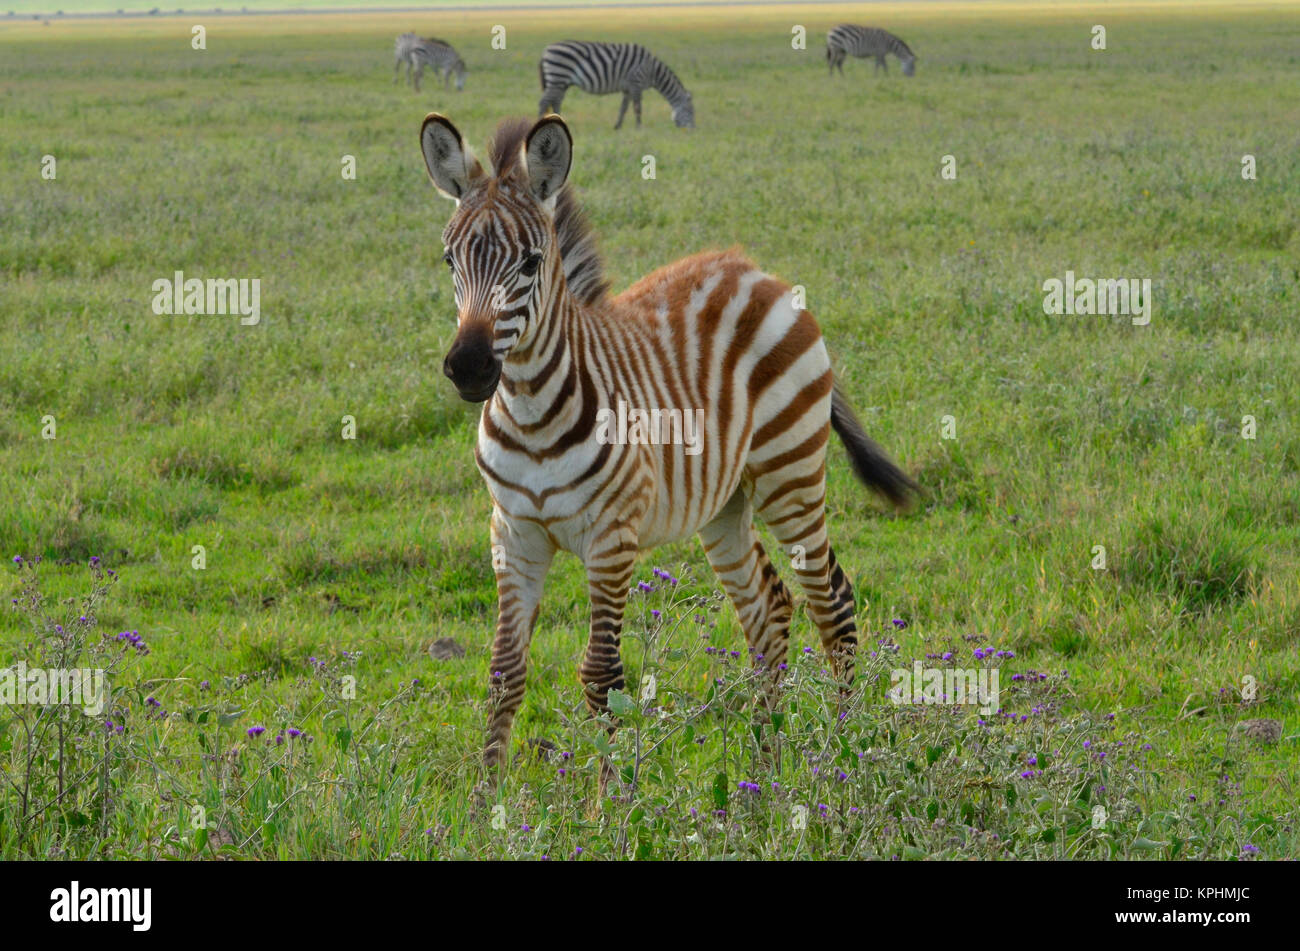 Ngorongoro crater, a World Heritage Site in Tanzania. Incredible wildlife variety for enjoyment by tourists. Landscape - Stock Image